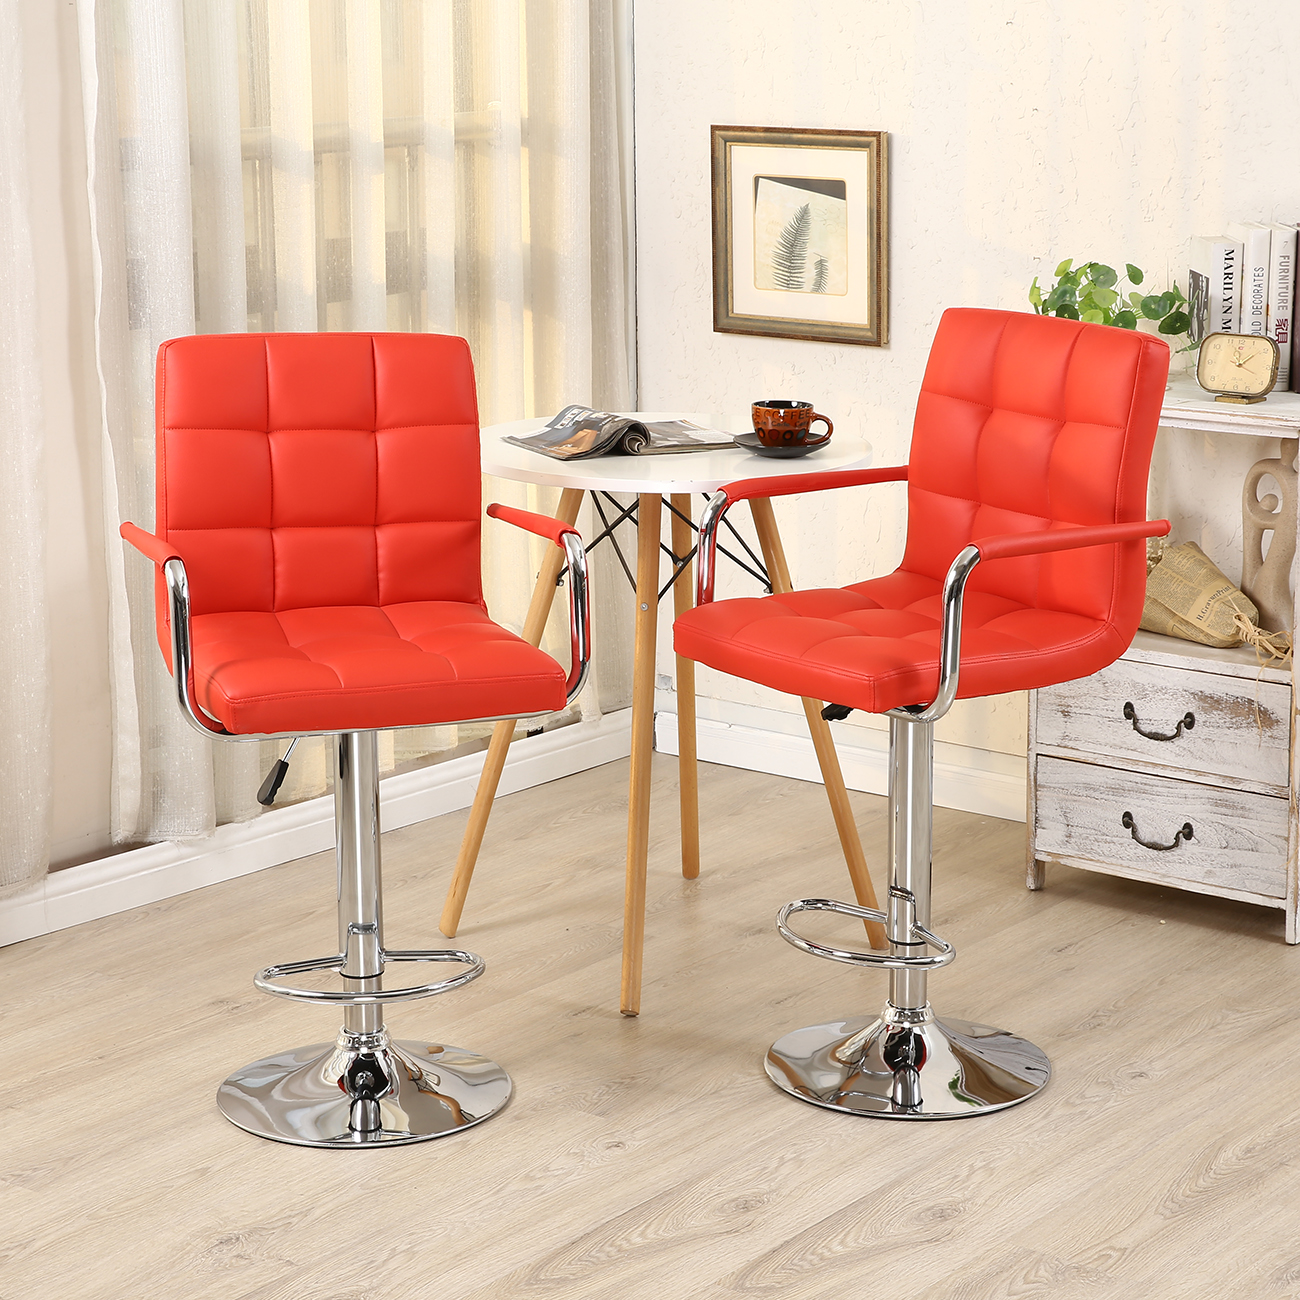 Set Of 2 Swivel Bar Stool Pu Leather Modern Adjustable